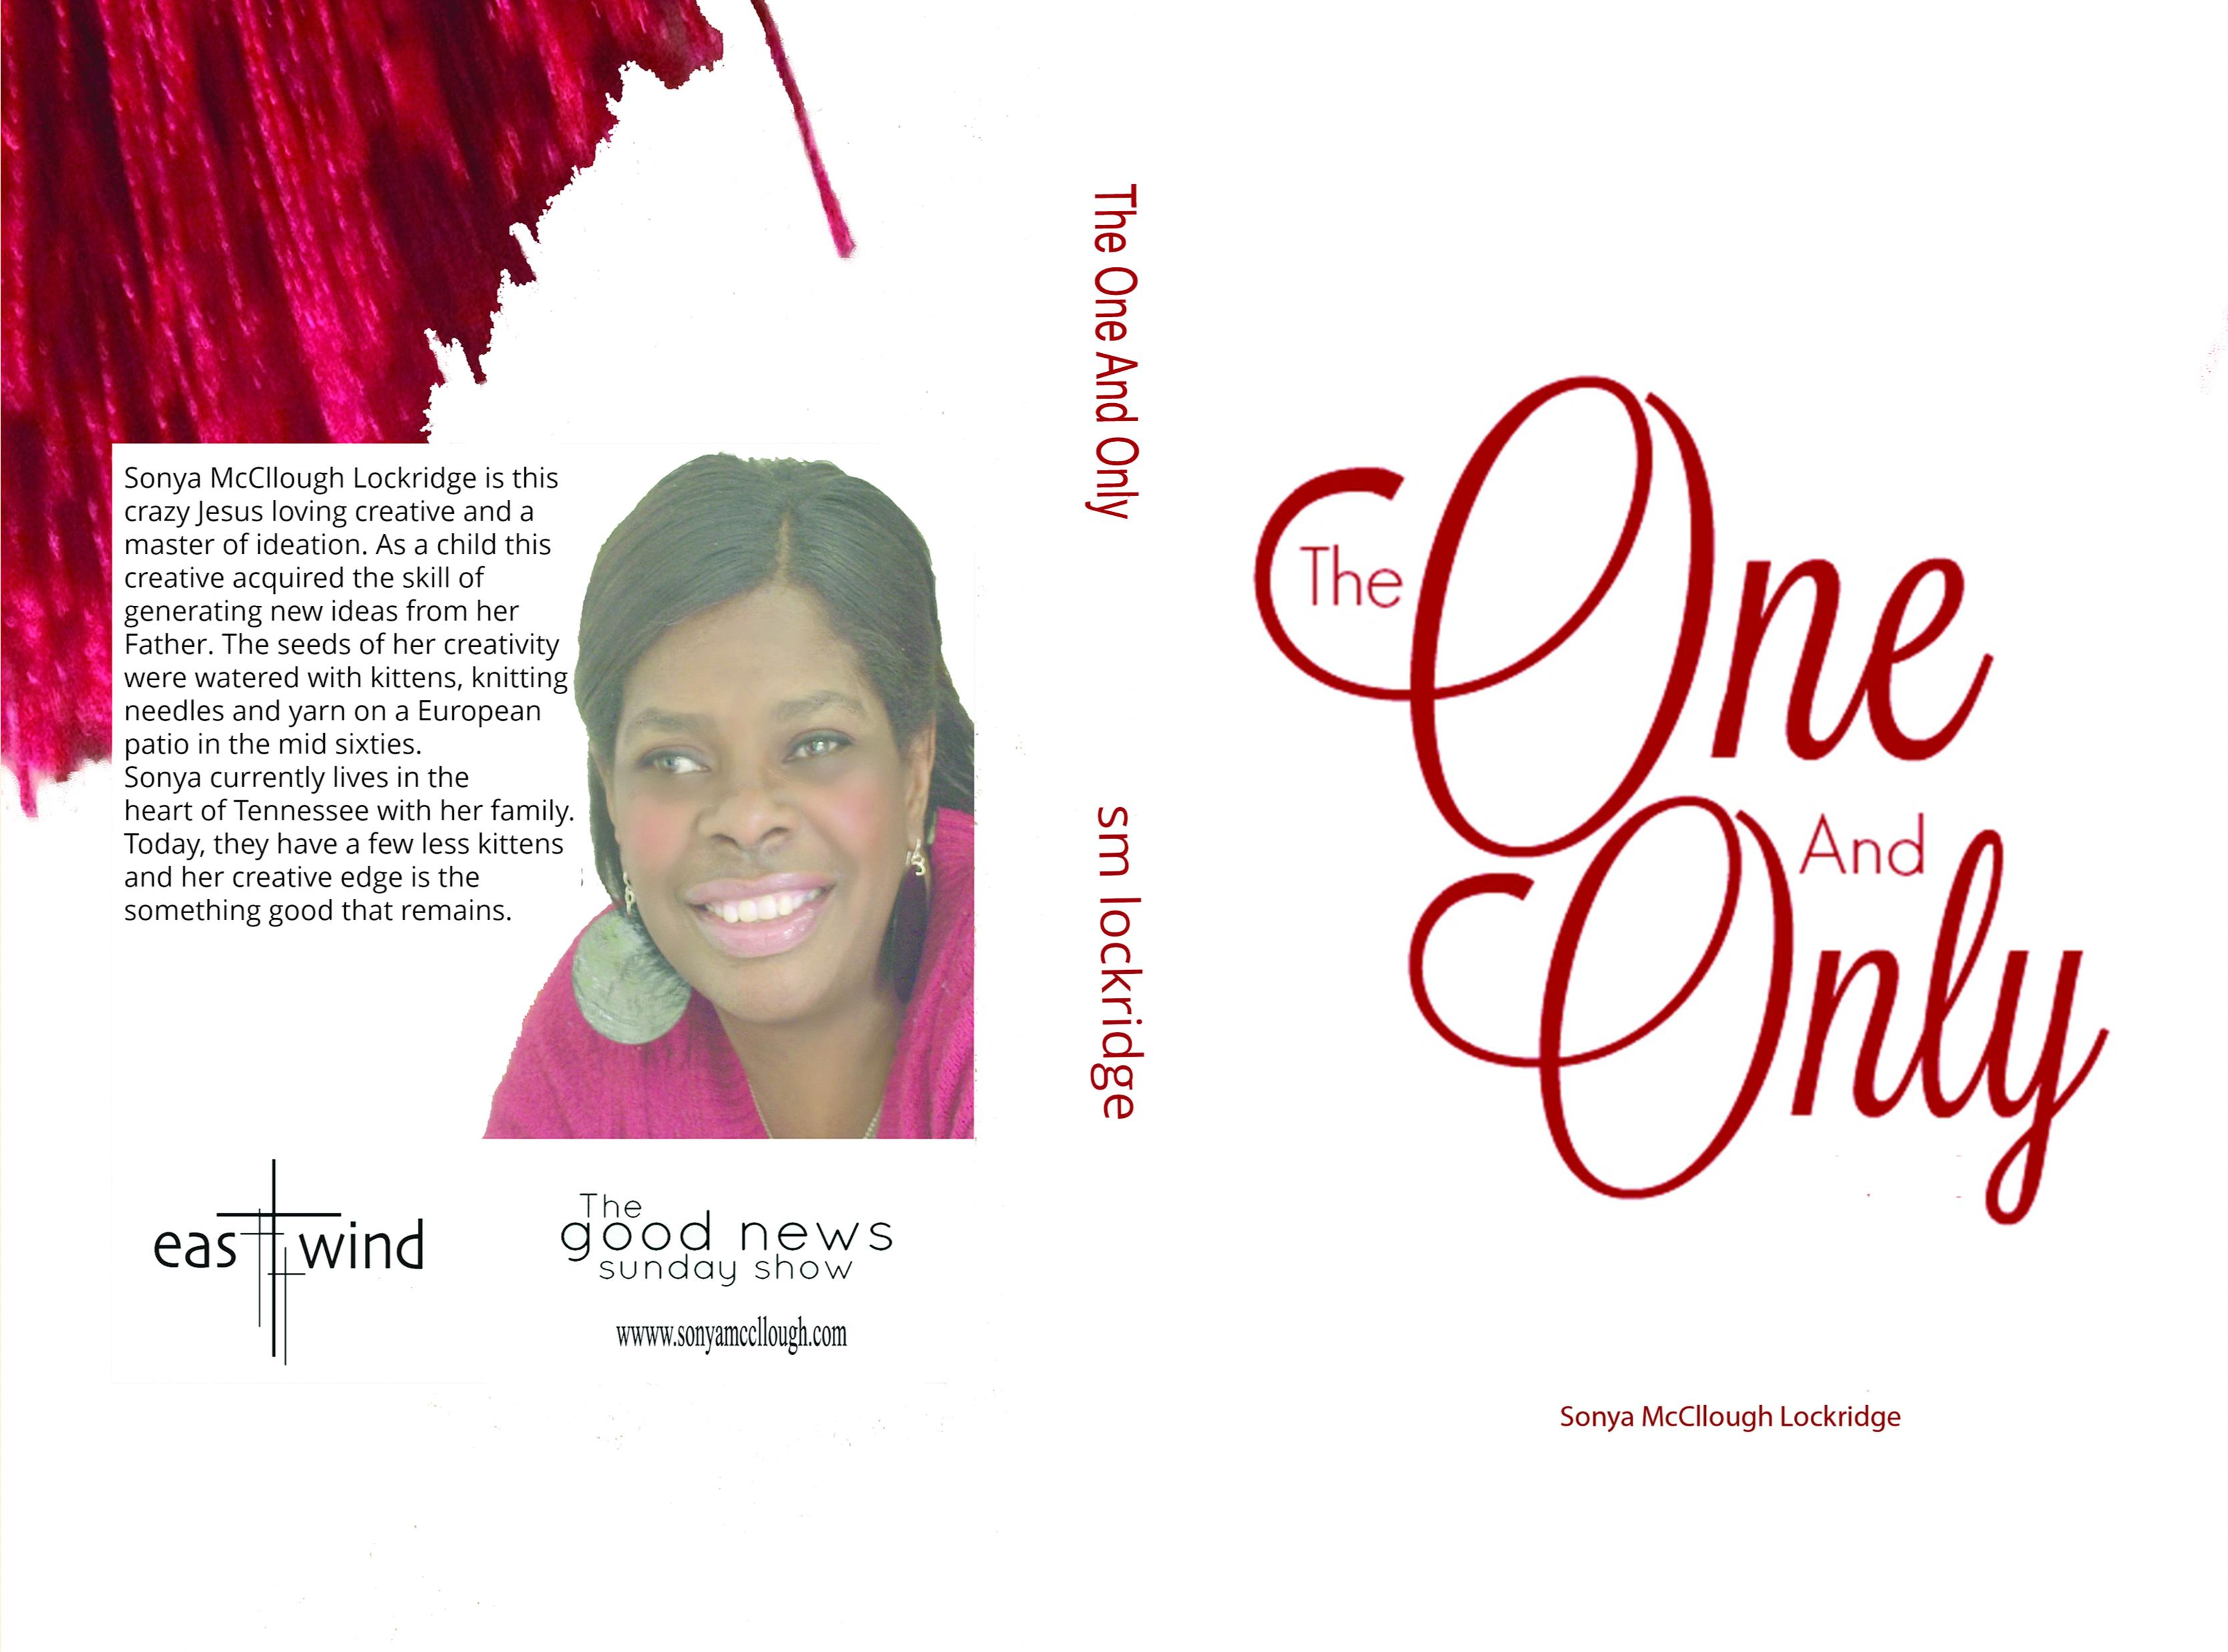 The One And Only Jesus Daily Devotional cover image